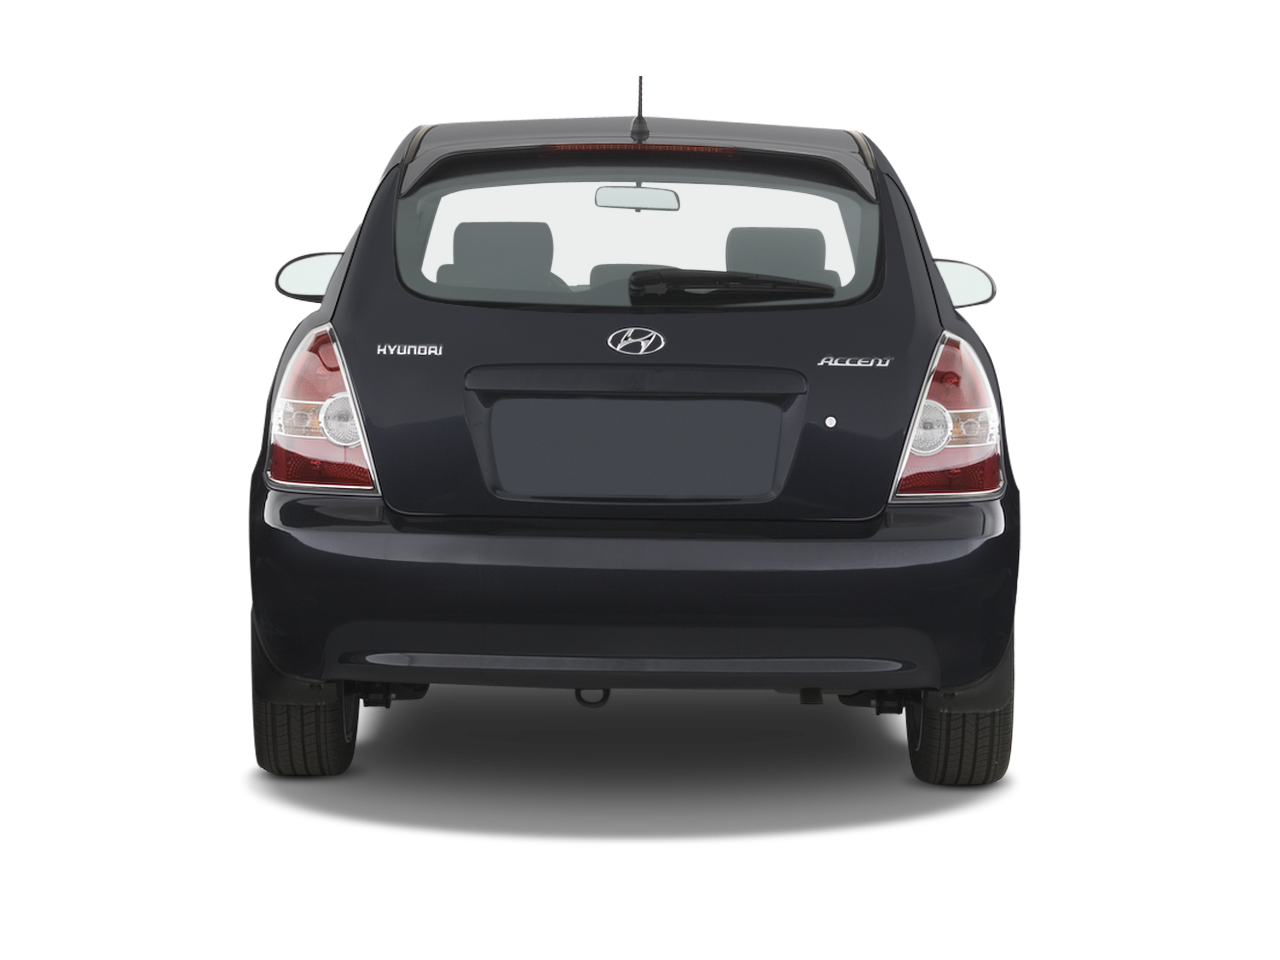 Hyundai Accent Hatchback 2017 Review >> 2008 Hyundai Accent - Hyundai Compact Hatchback Review - Automobile Magazine